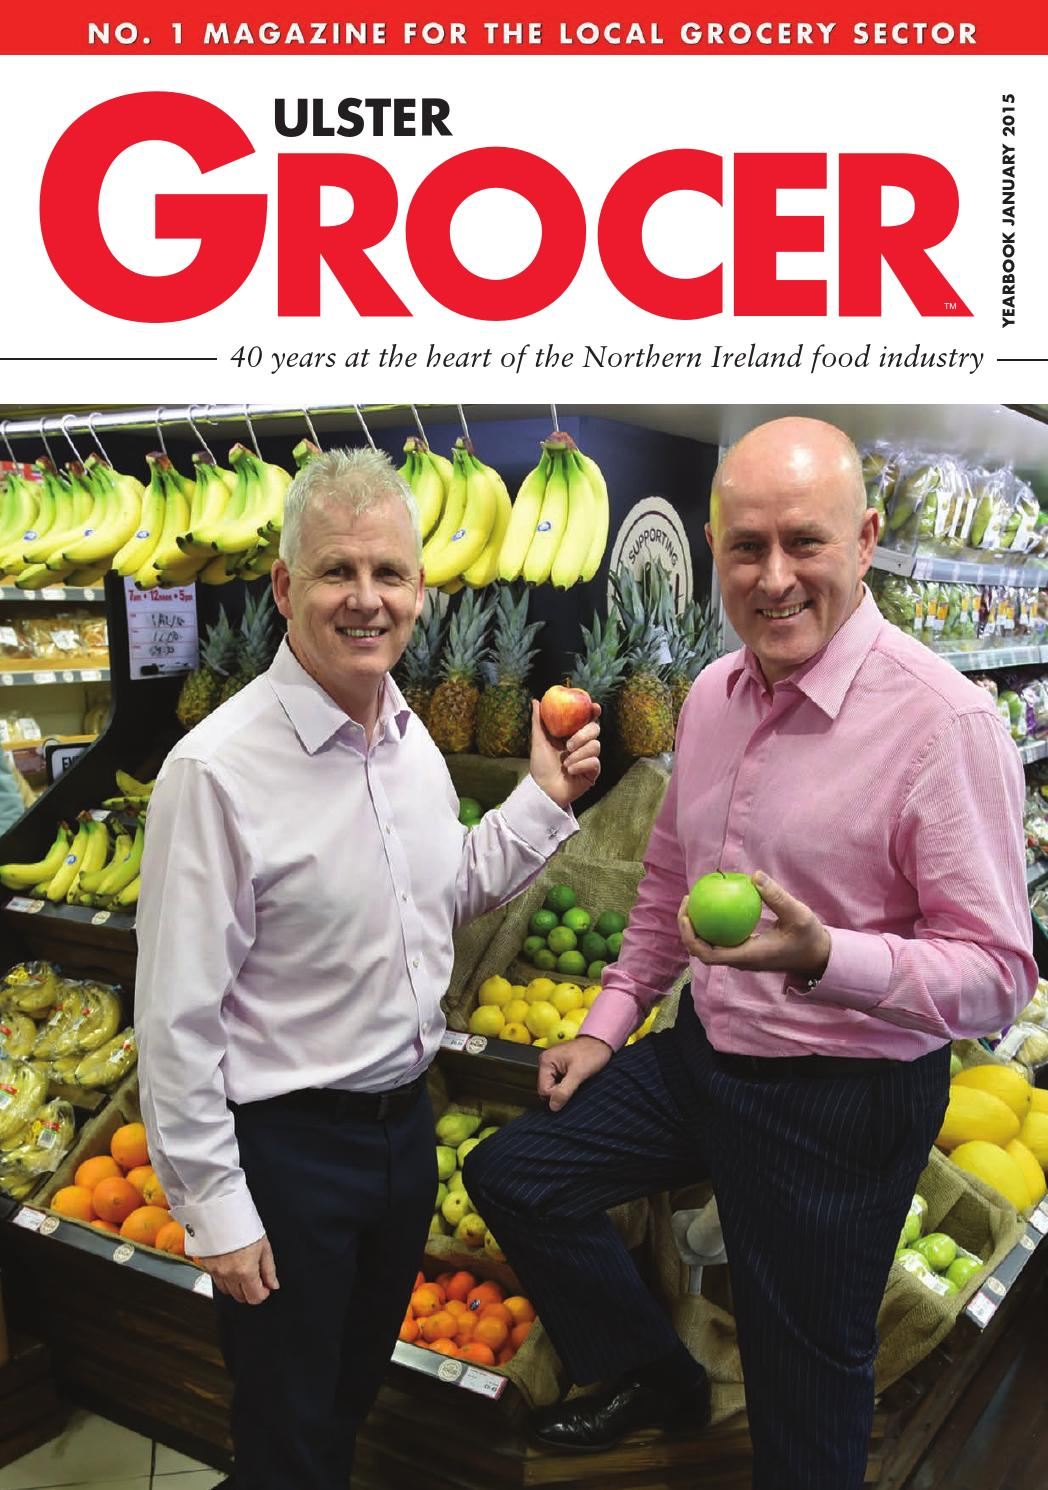 Ulster Grocer by Karen Donnelly - issuu